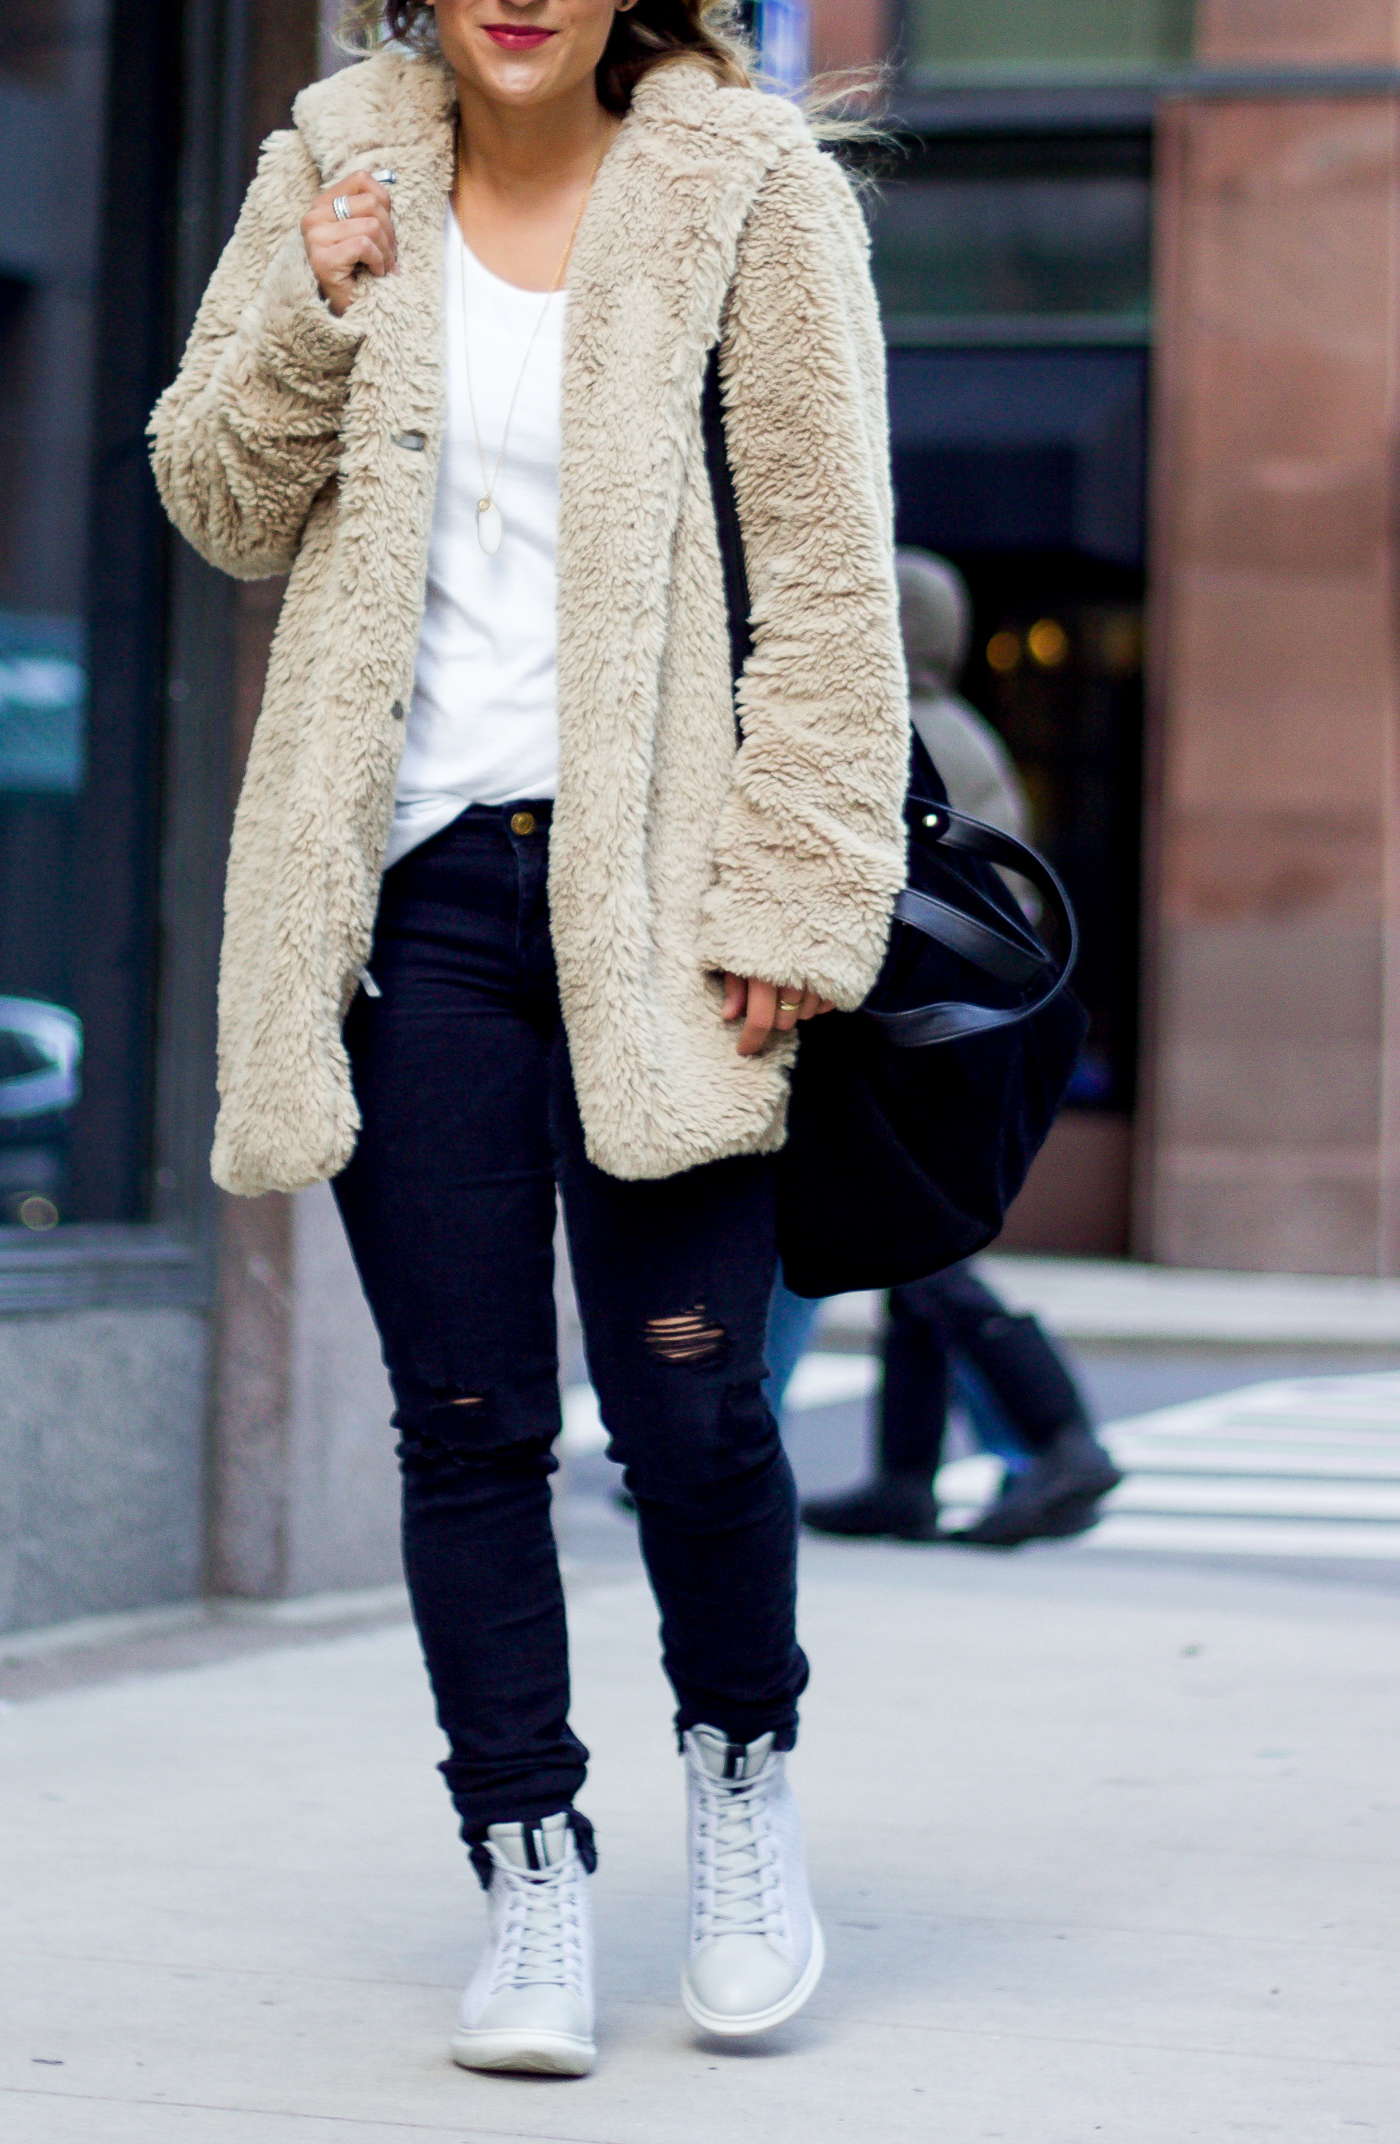 Gap sherpa jacket, Zara jeans and Ecco High Top Sneakers, as a winter outfit idea